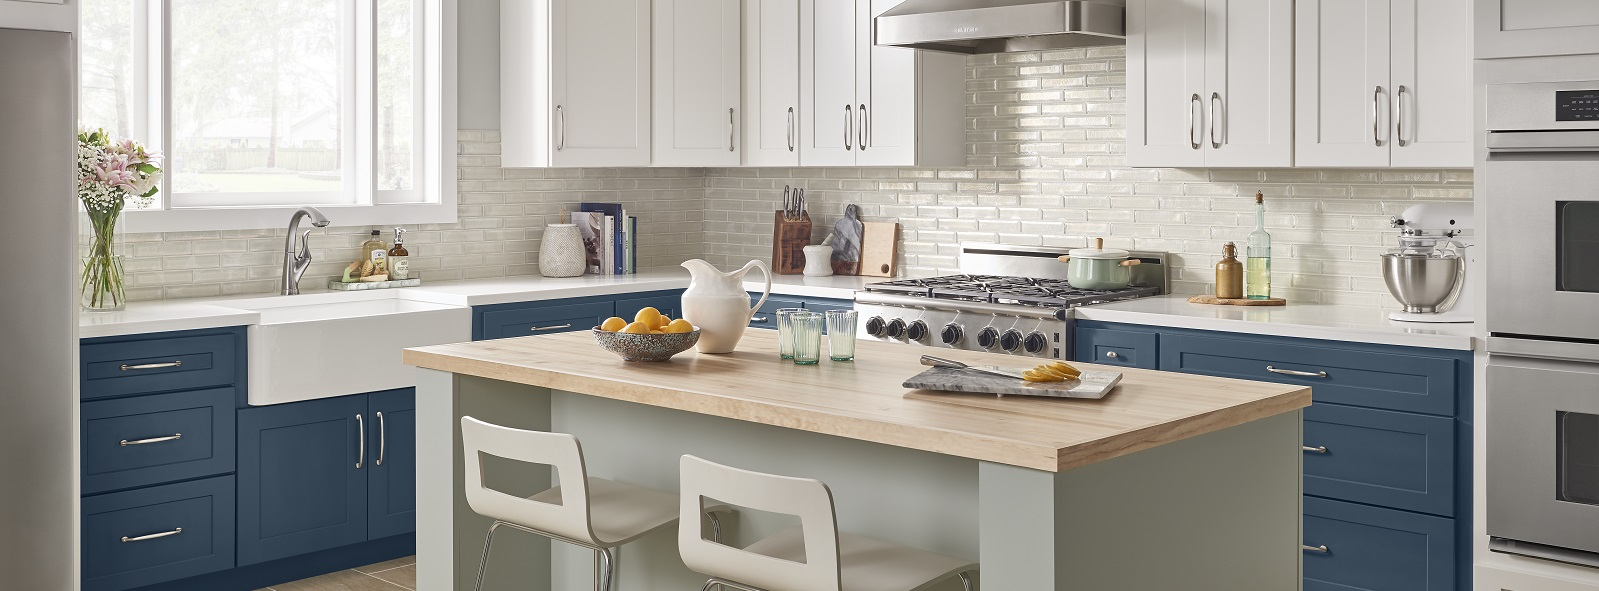 White & Blue Two Tone Kitchen Cabinets